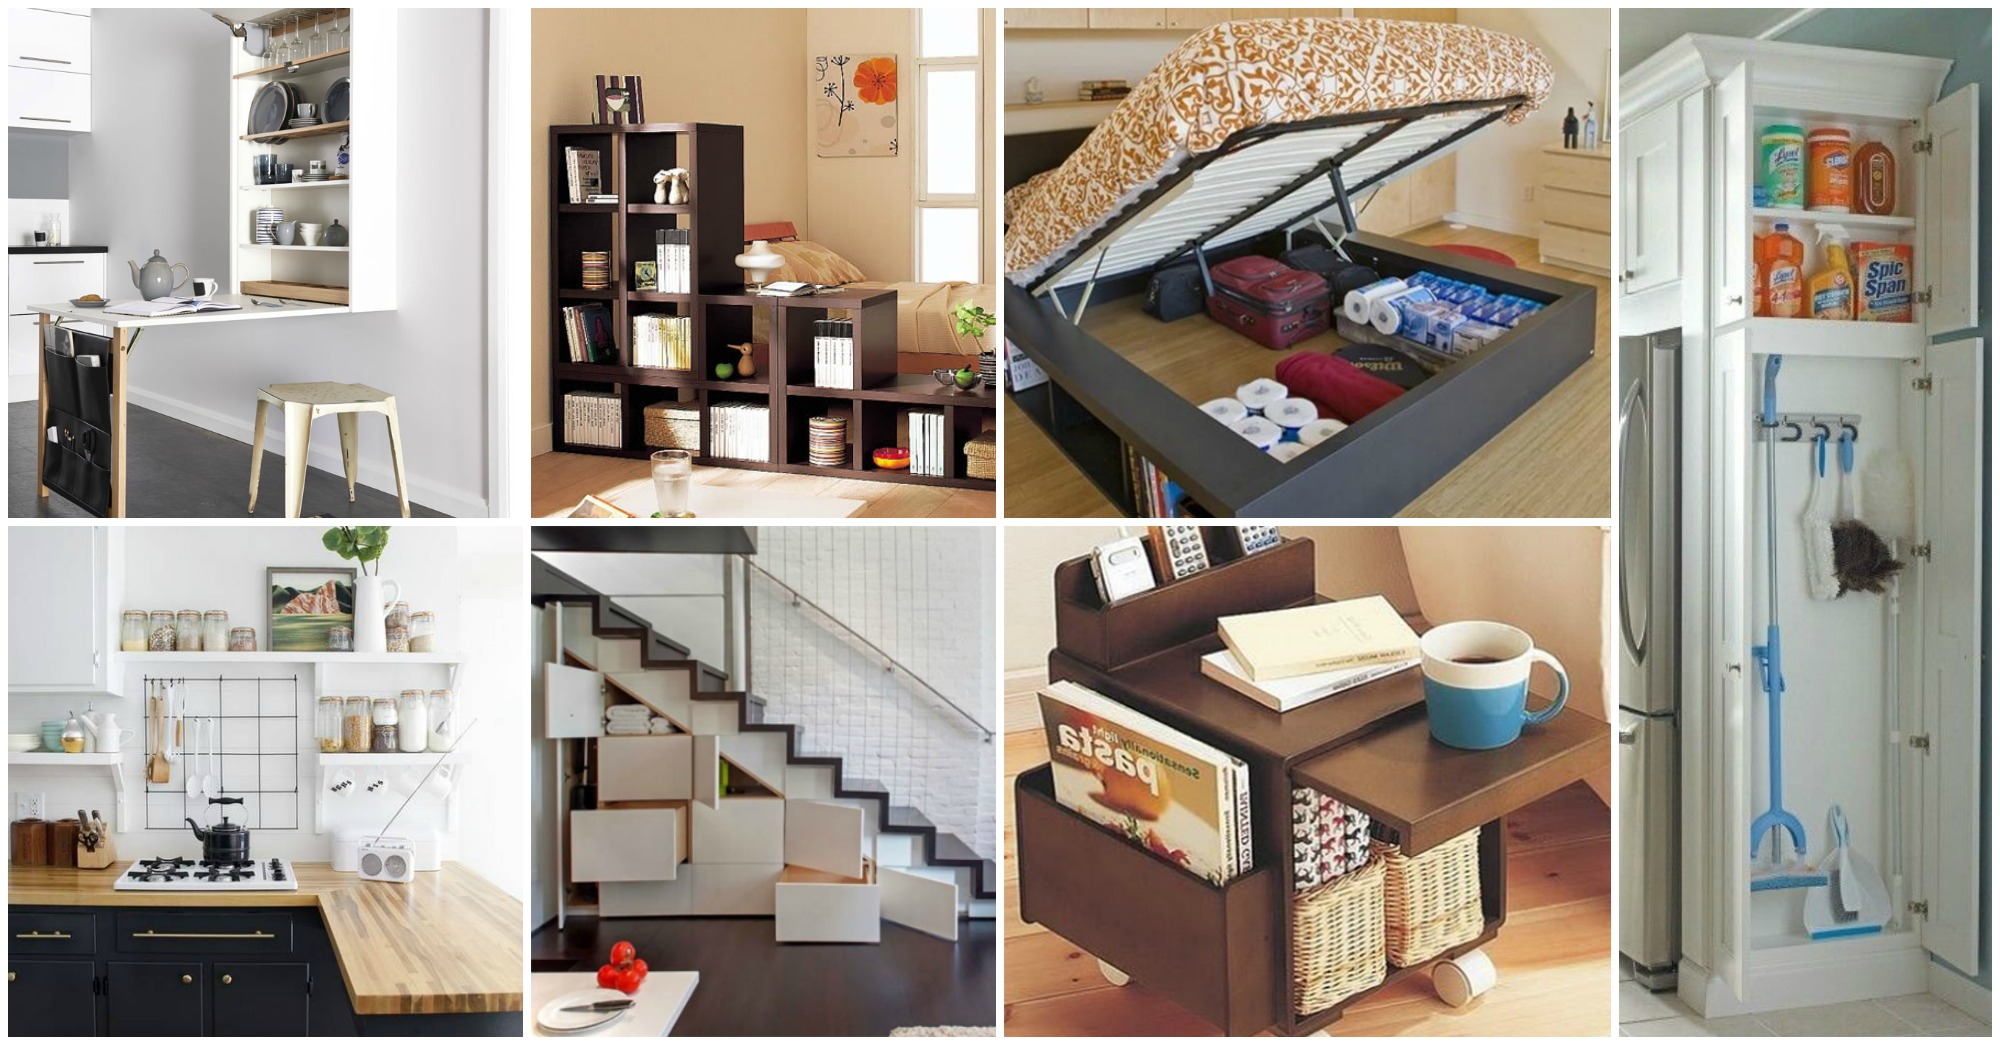 decorations for living room ideas modern decor 2017 10 remarkable to get more storage in your small home